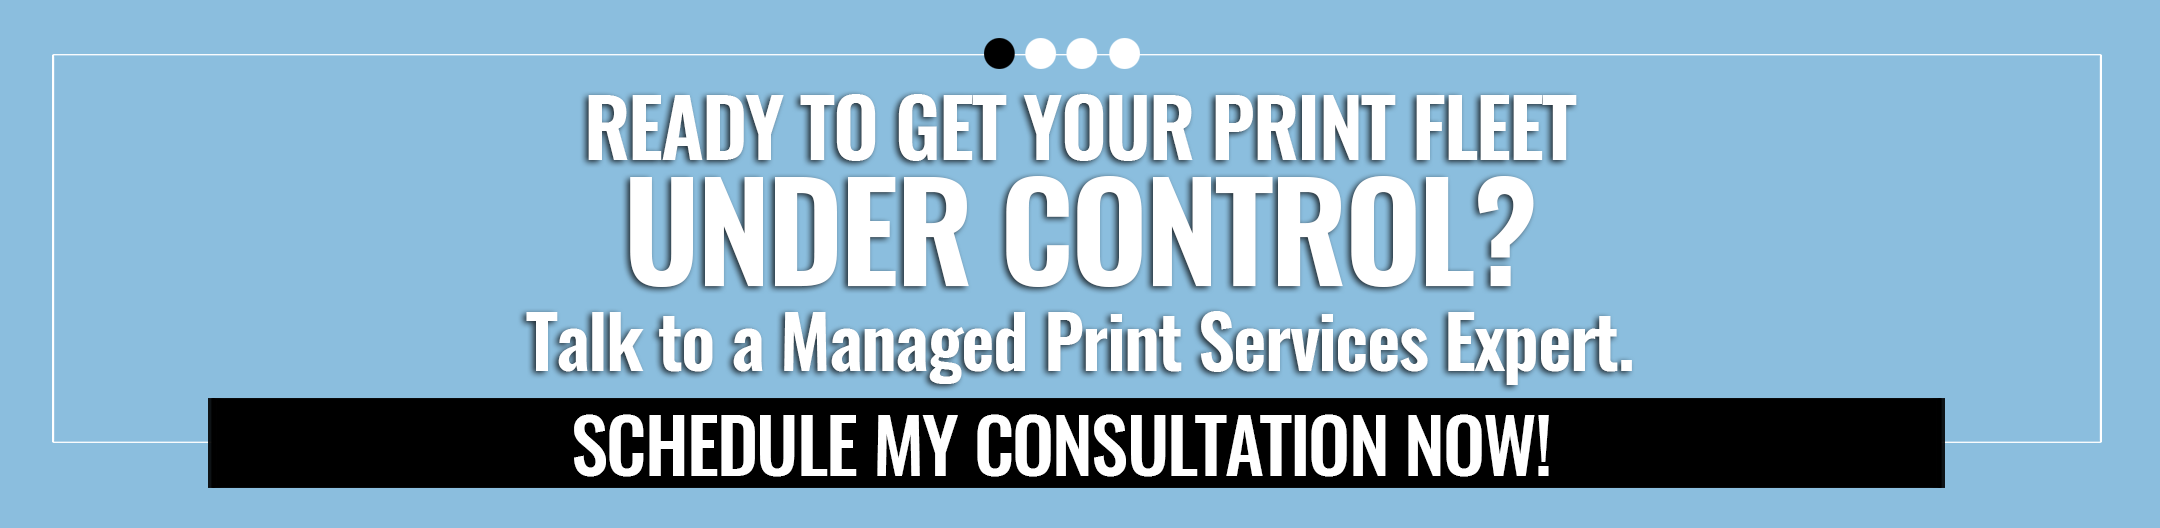 Ready to get your print fleet under control? Click here to schedule a consultation with a Managed Print Services expert now!